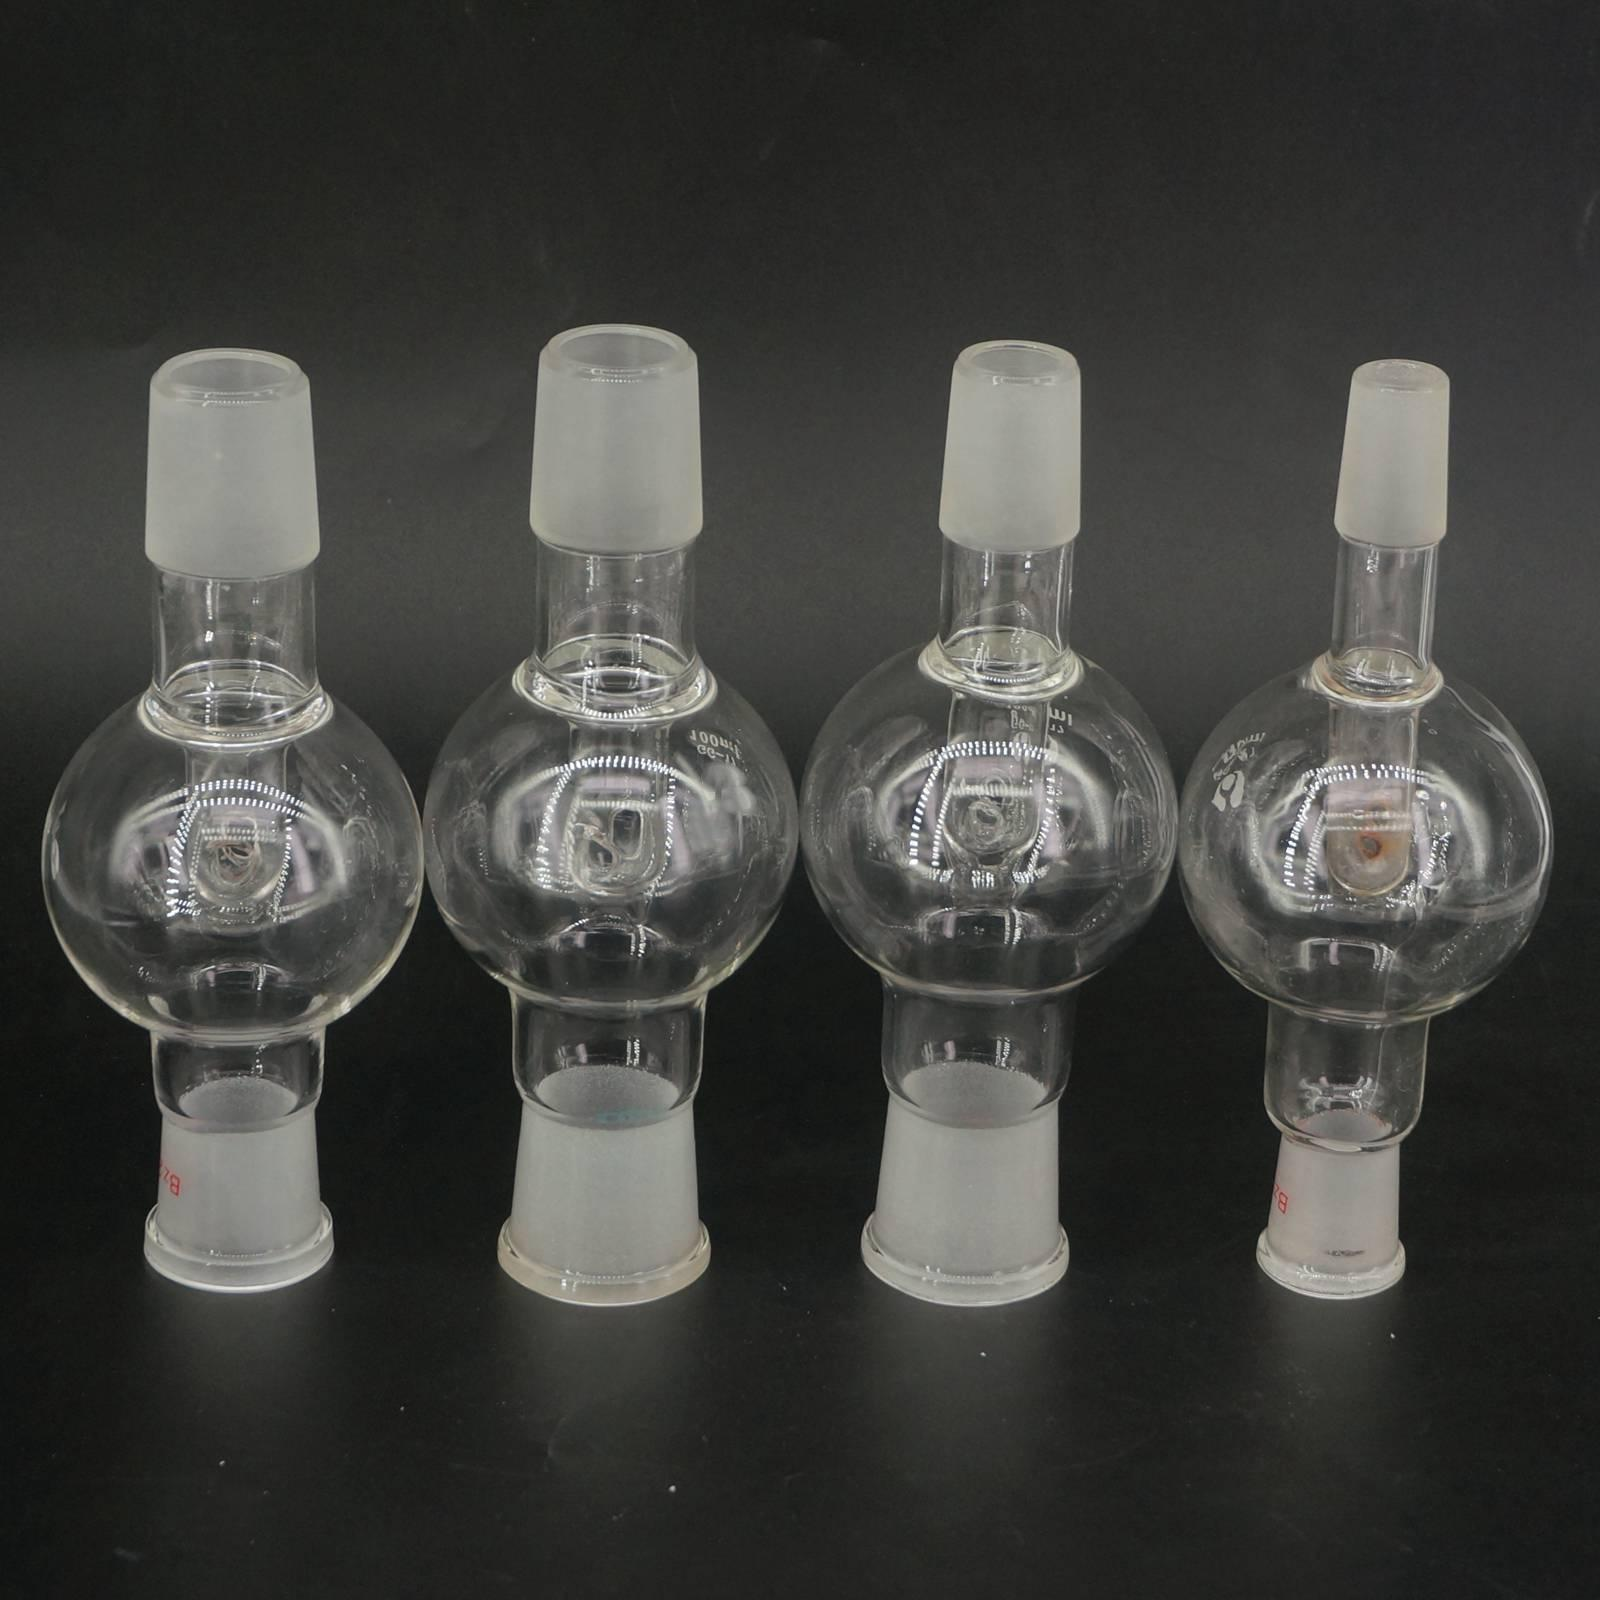 50ml Bump Trap 14/23 19/26 24/29 29/32 Female To Male Joint GG17 Glass Rotary Evaporator Labware